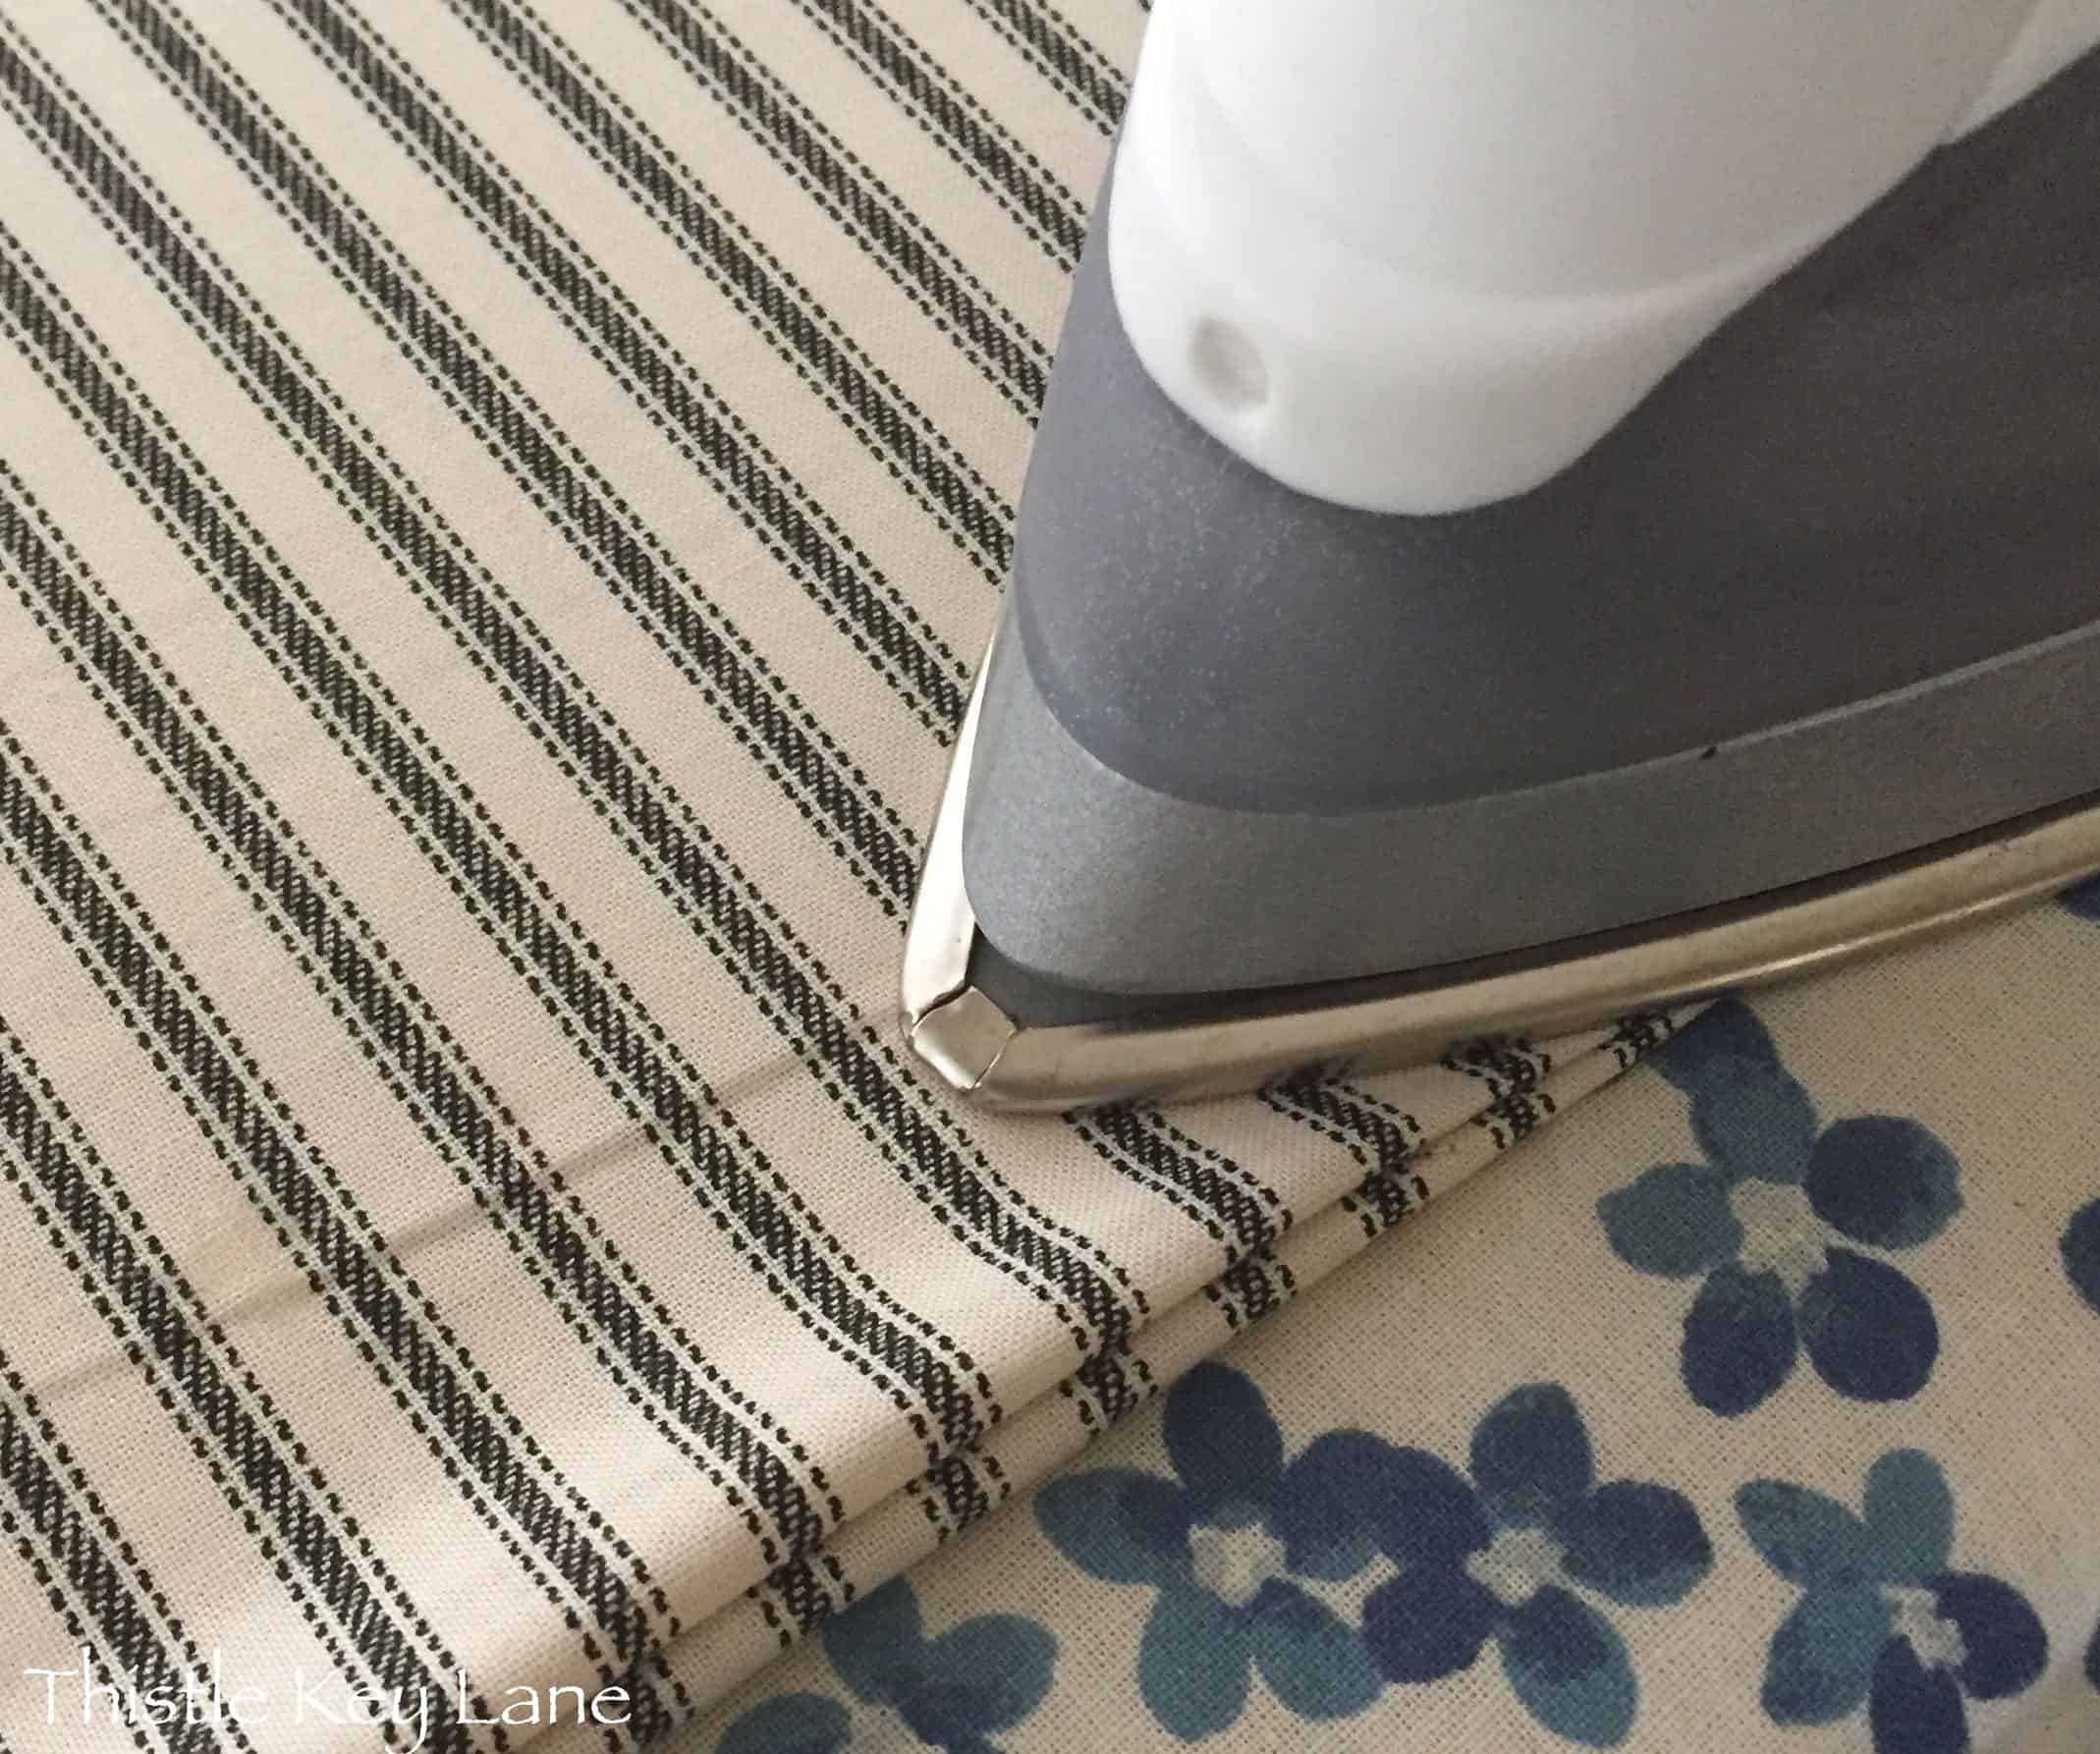 Iron fabric together to form a seam